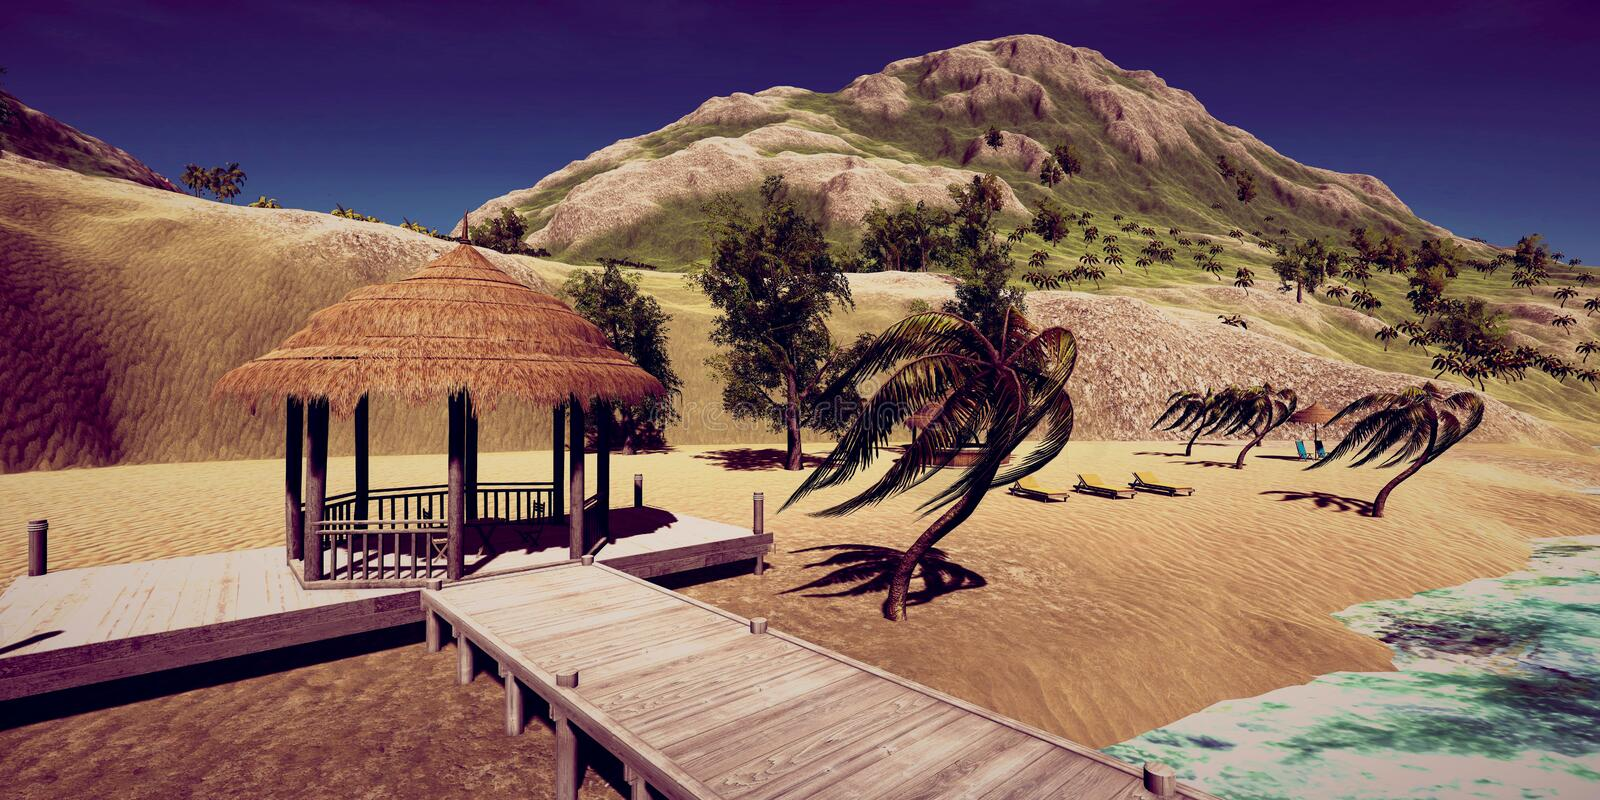 Extremely detailed and realistc high resolution 3D illustration of a luxury vacation at a tropcial Island. Extremely detailed and realistc high resolution 3D royalty free stock image